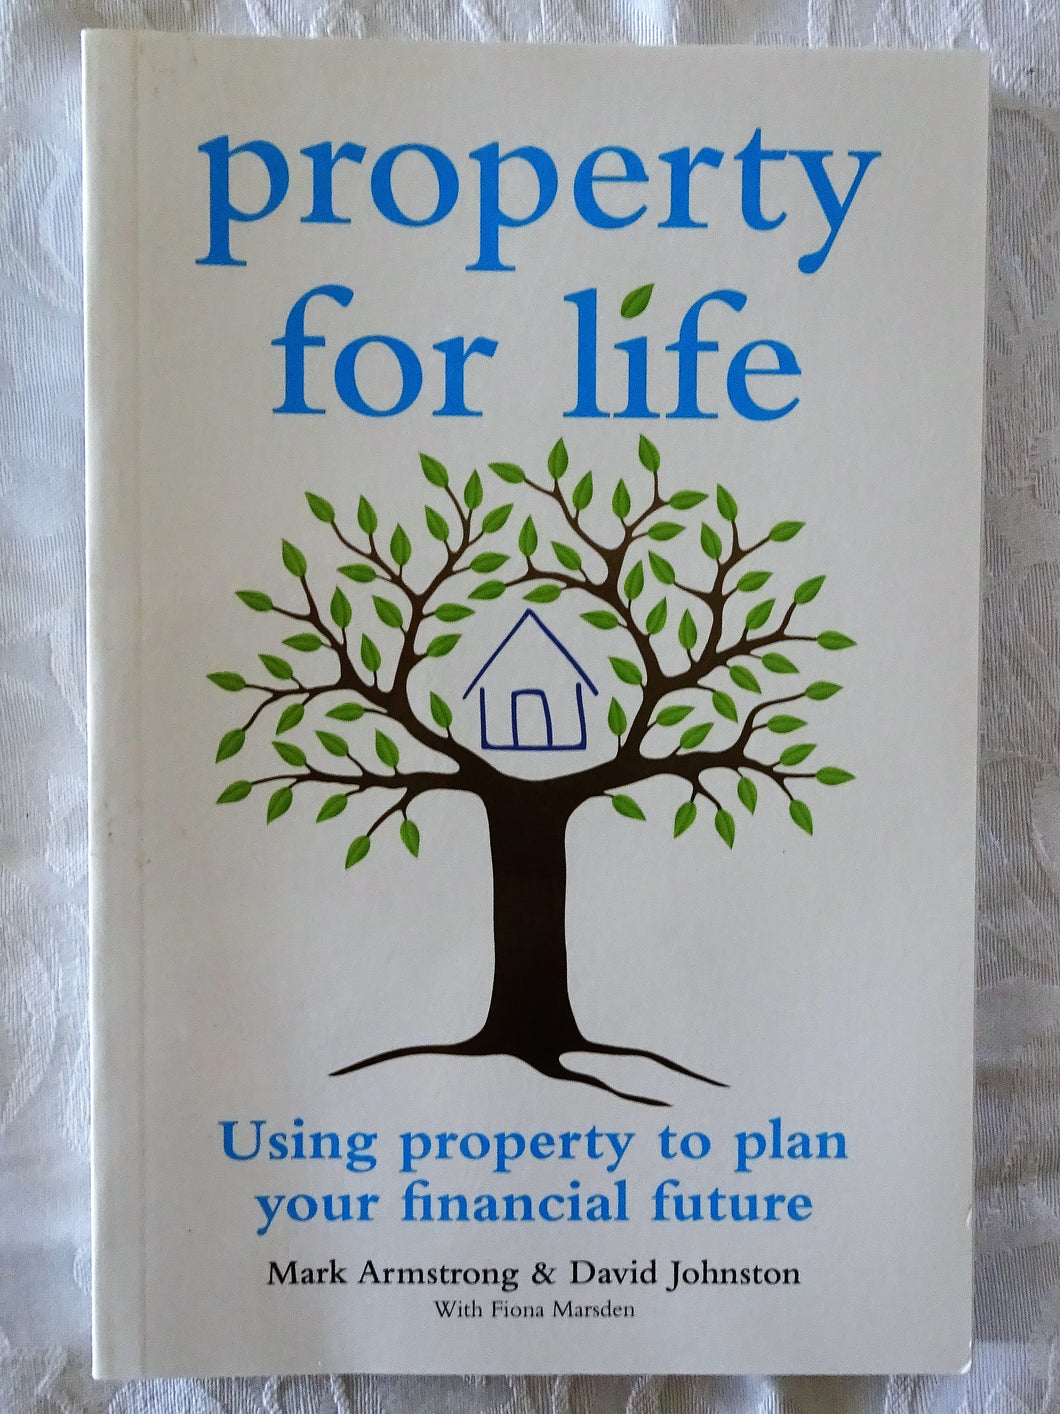 Property For Life by Mark Armstrong and David Johnston